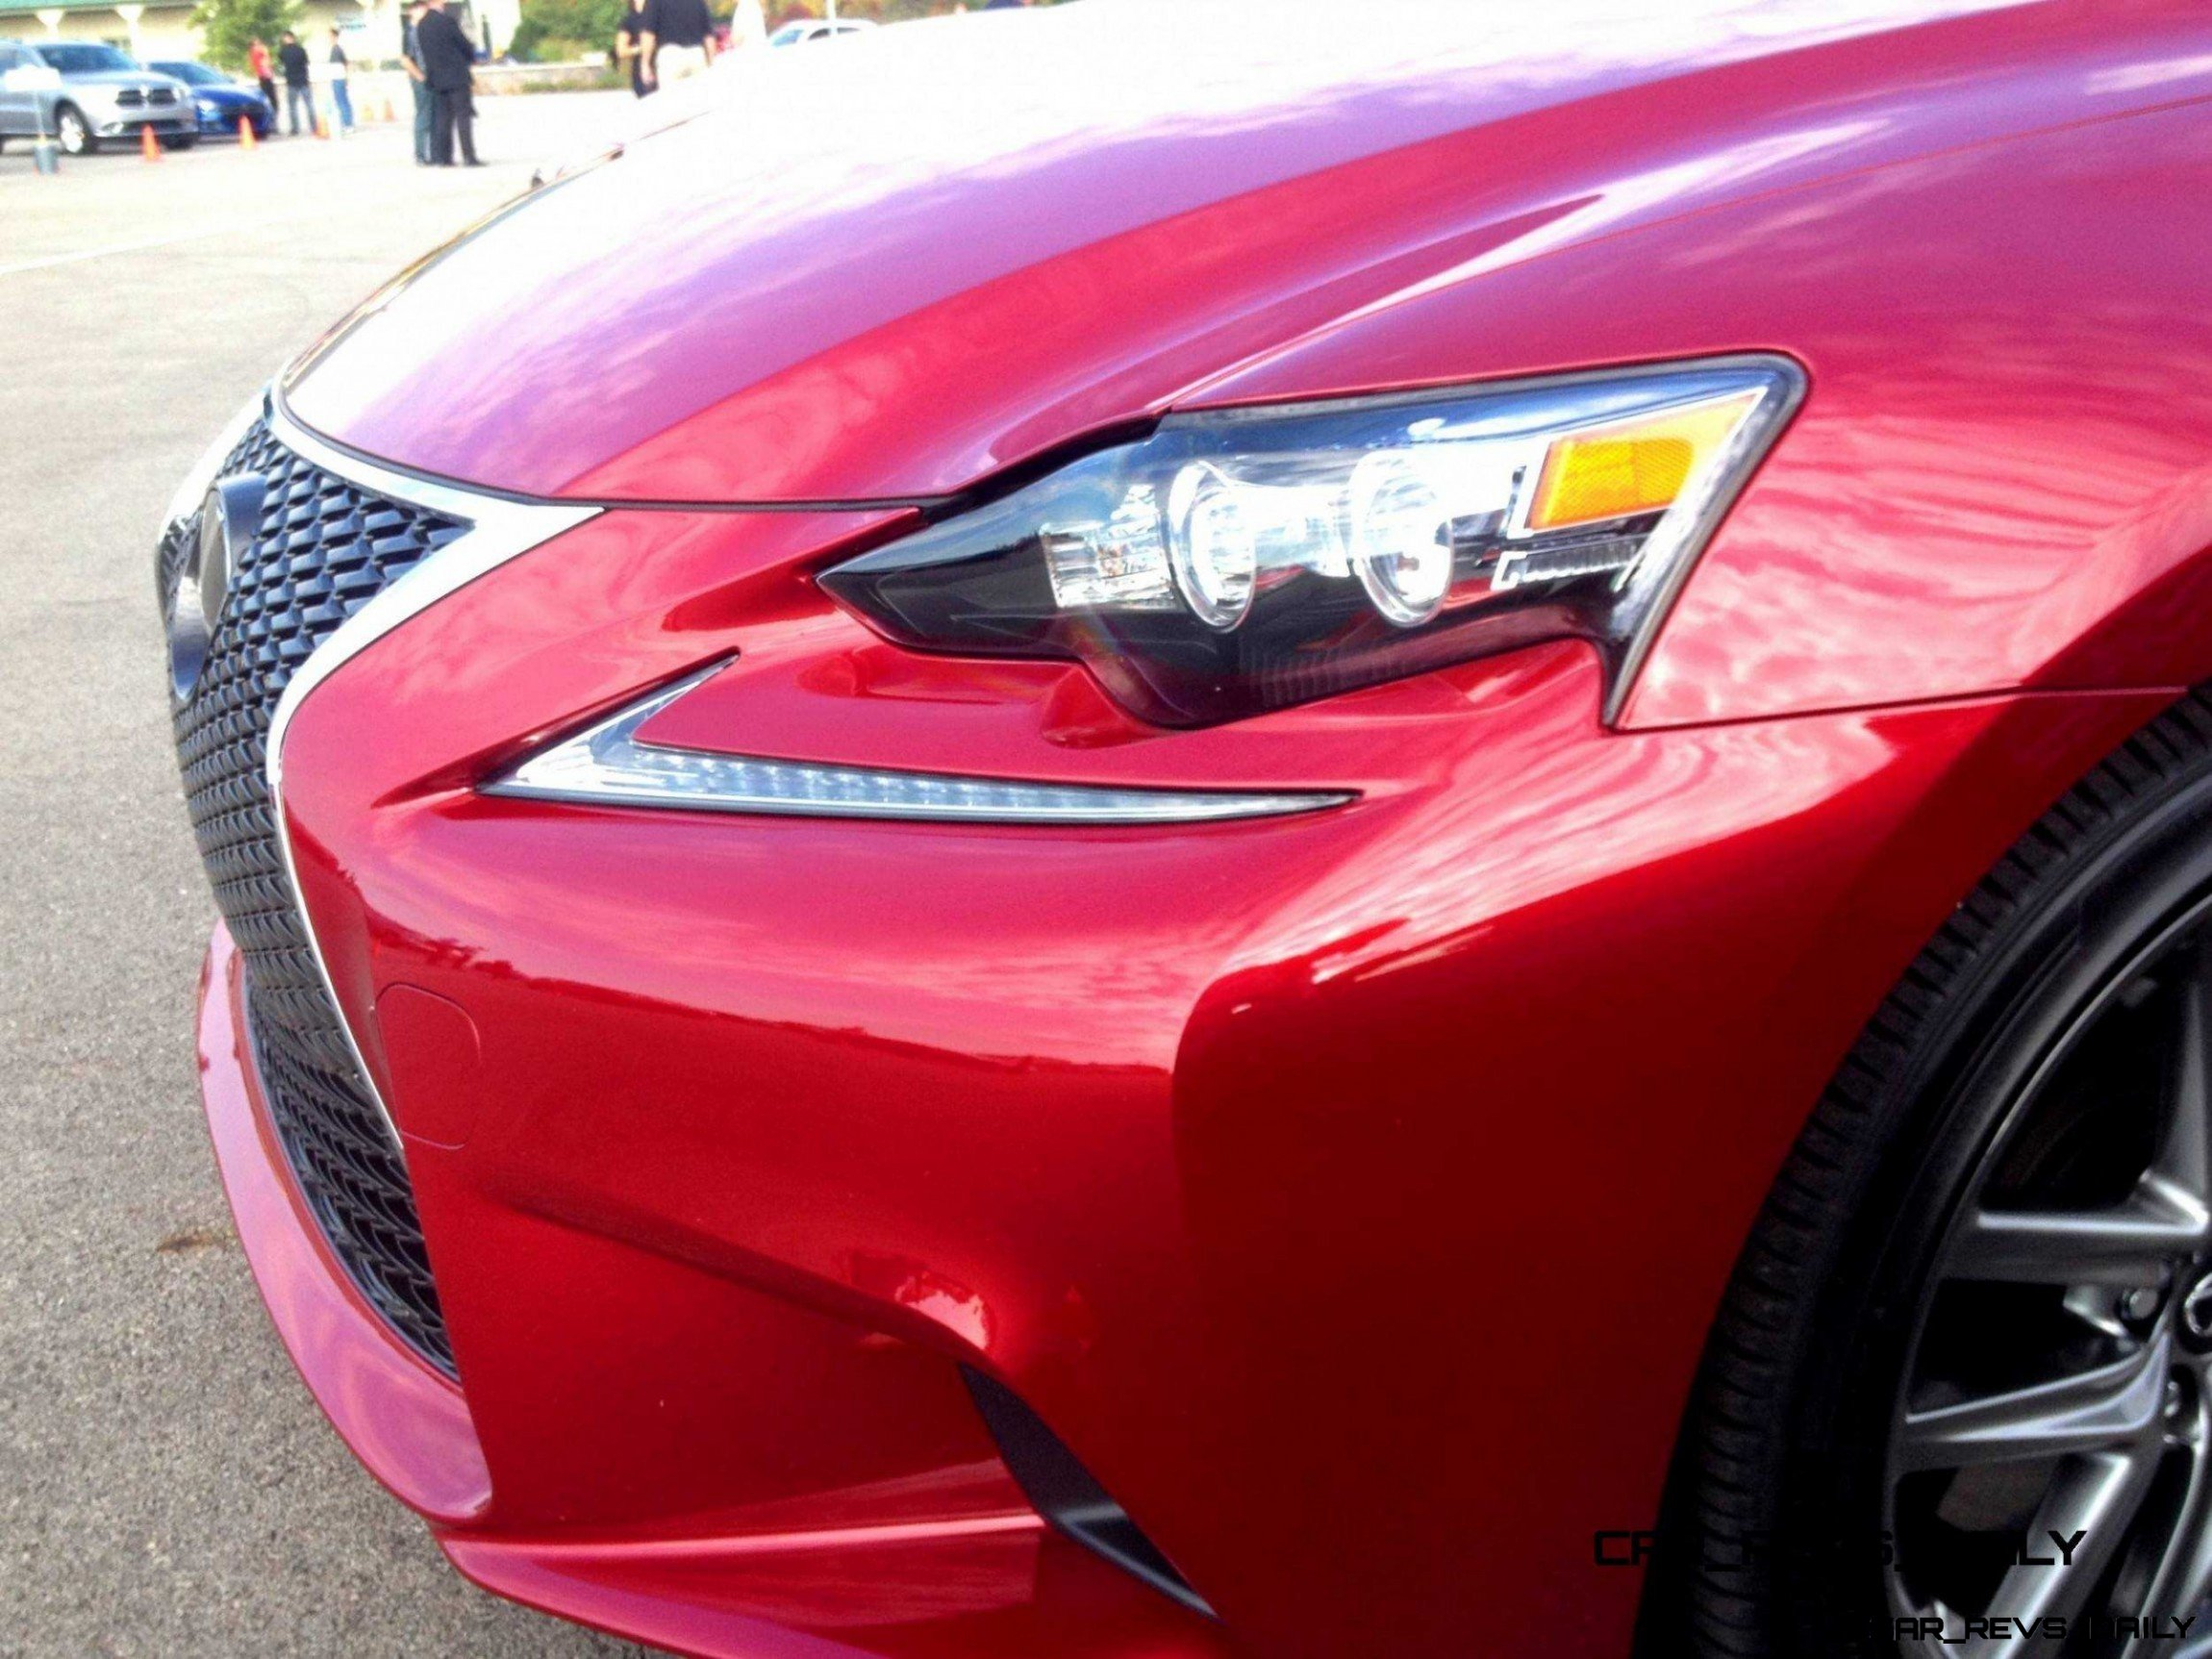 2014 lexus is 350 f sport awd review car reviews new html. Black Bedroom Furniture Sets. Home Design Ideas